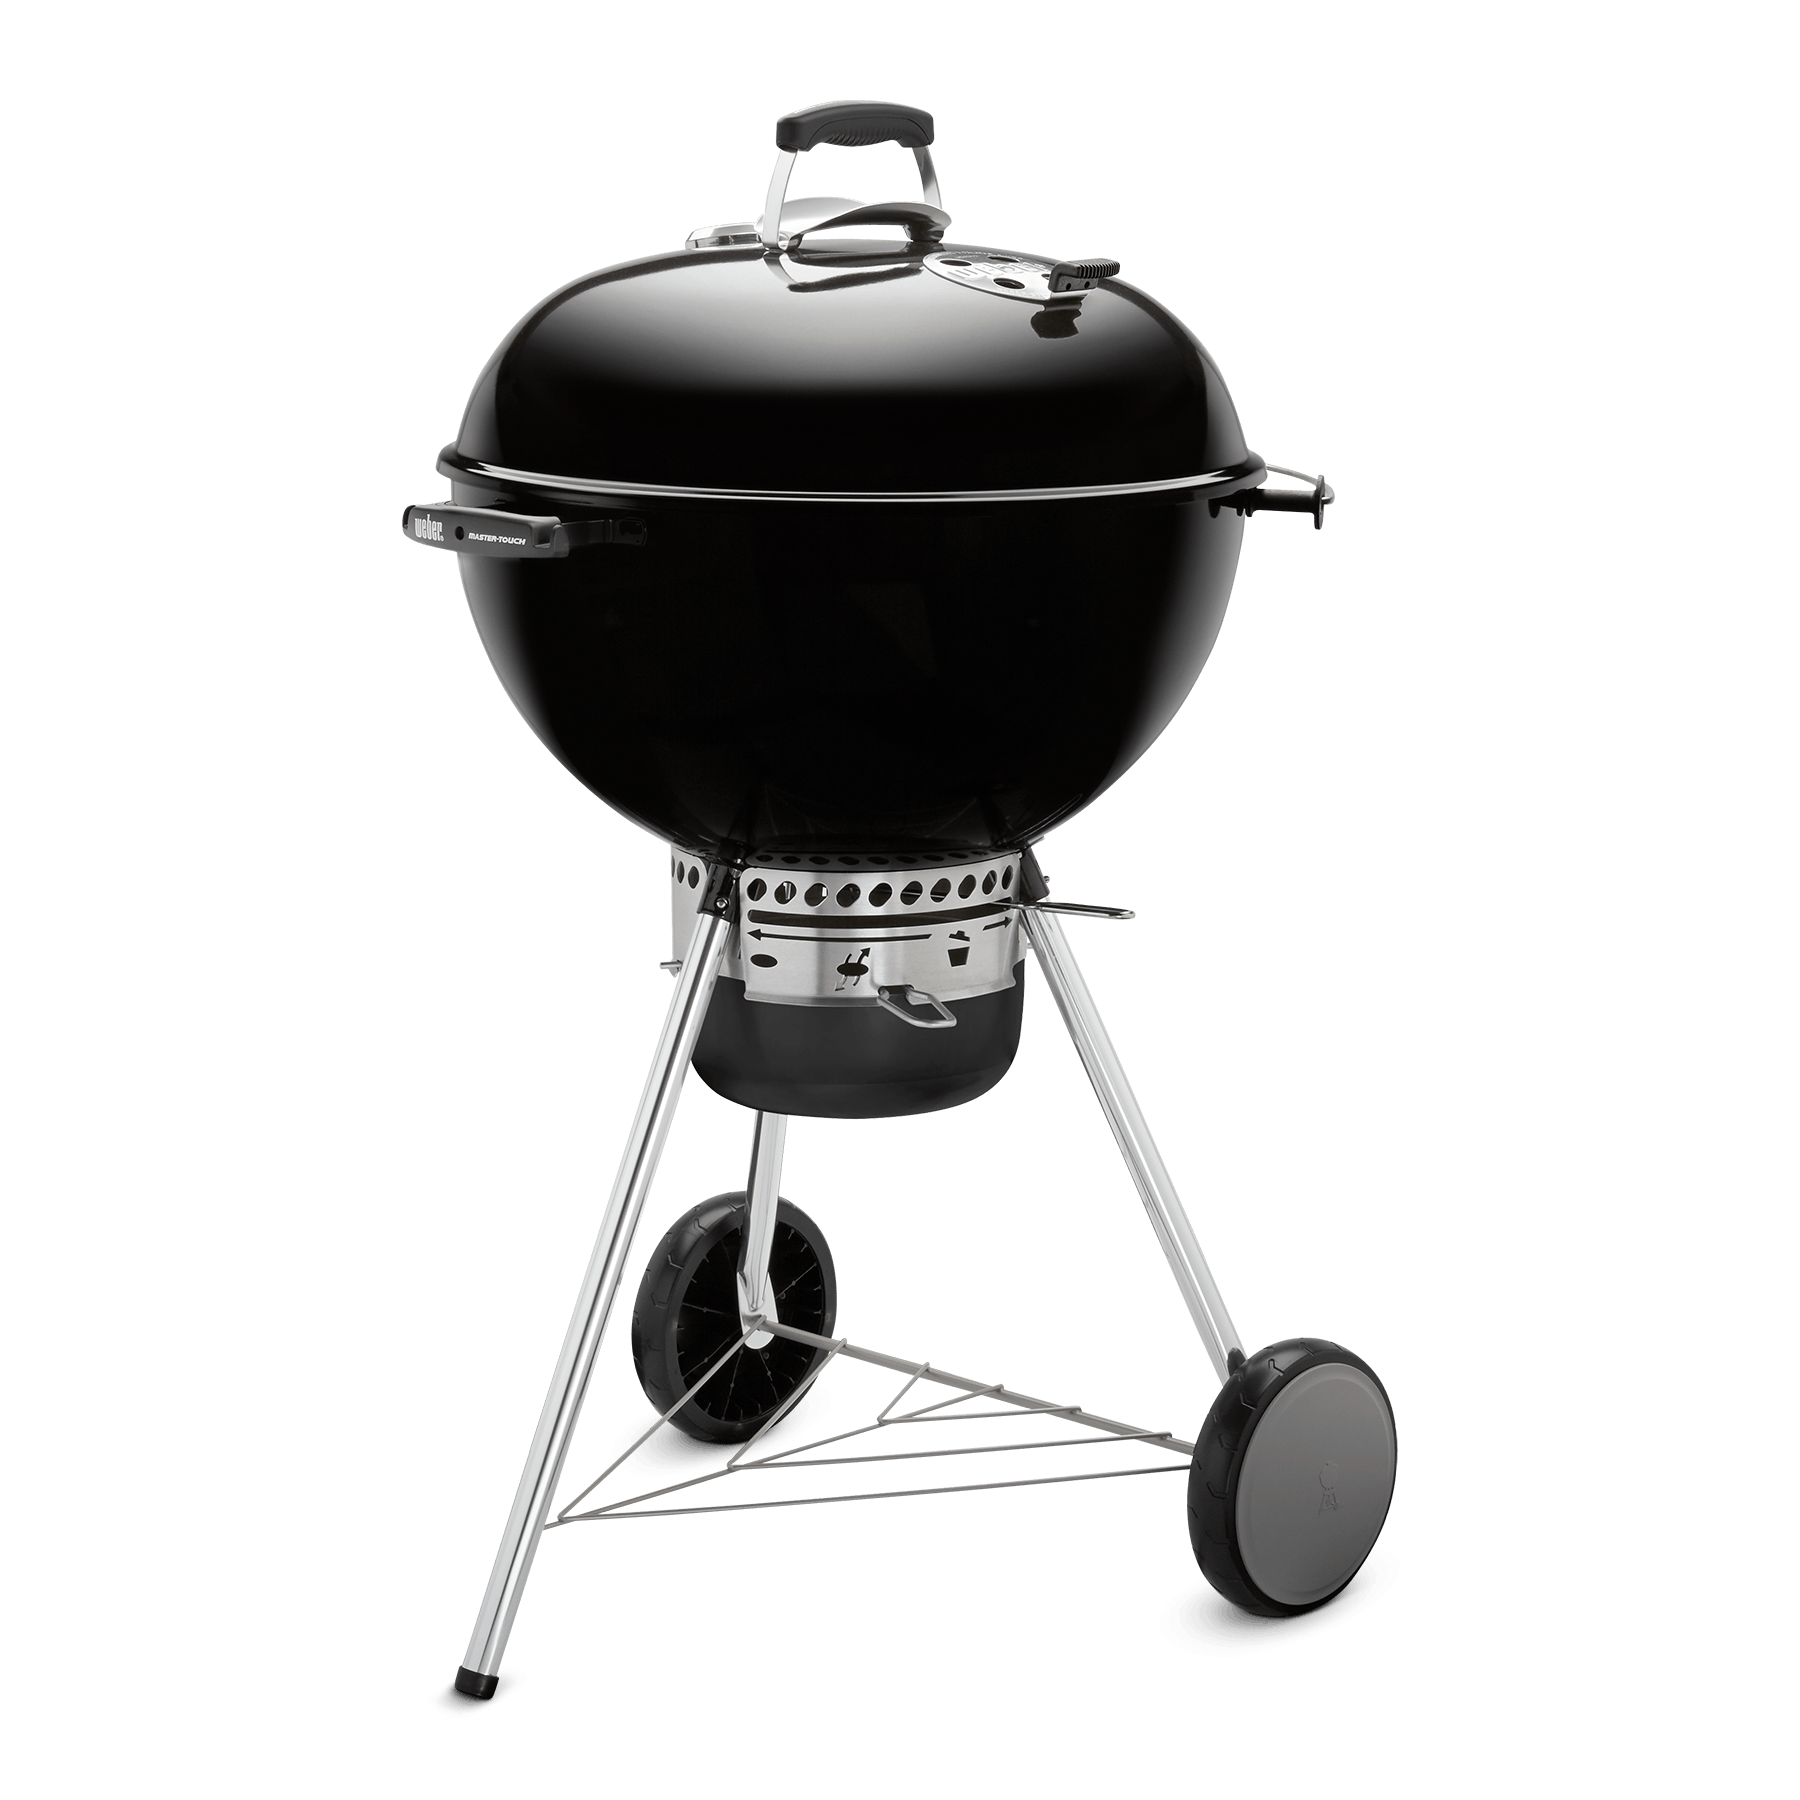 Weber Grill 57 Cm Gbs Master Touch Gbs Special Edition Houtskoolbarbecue Ø 57 Cm